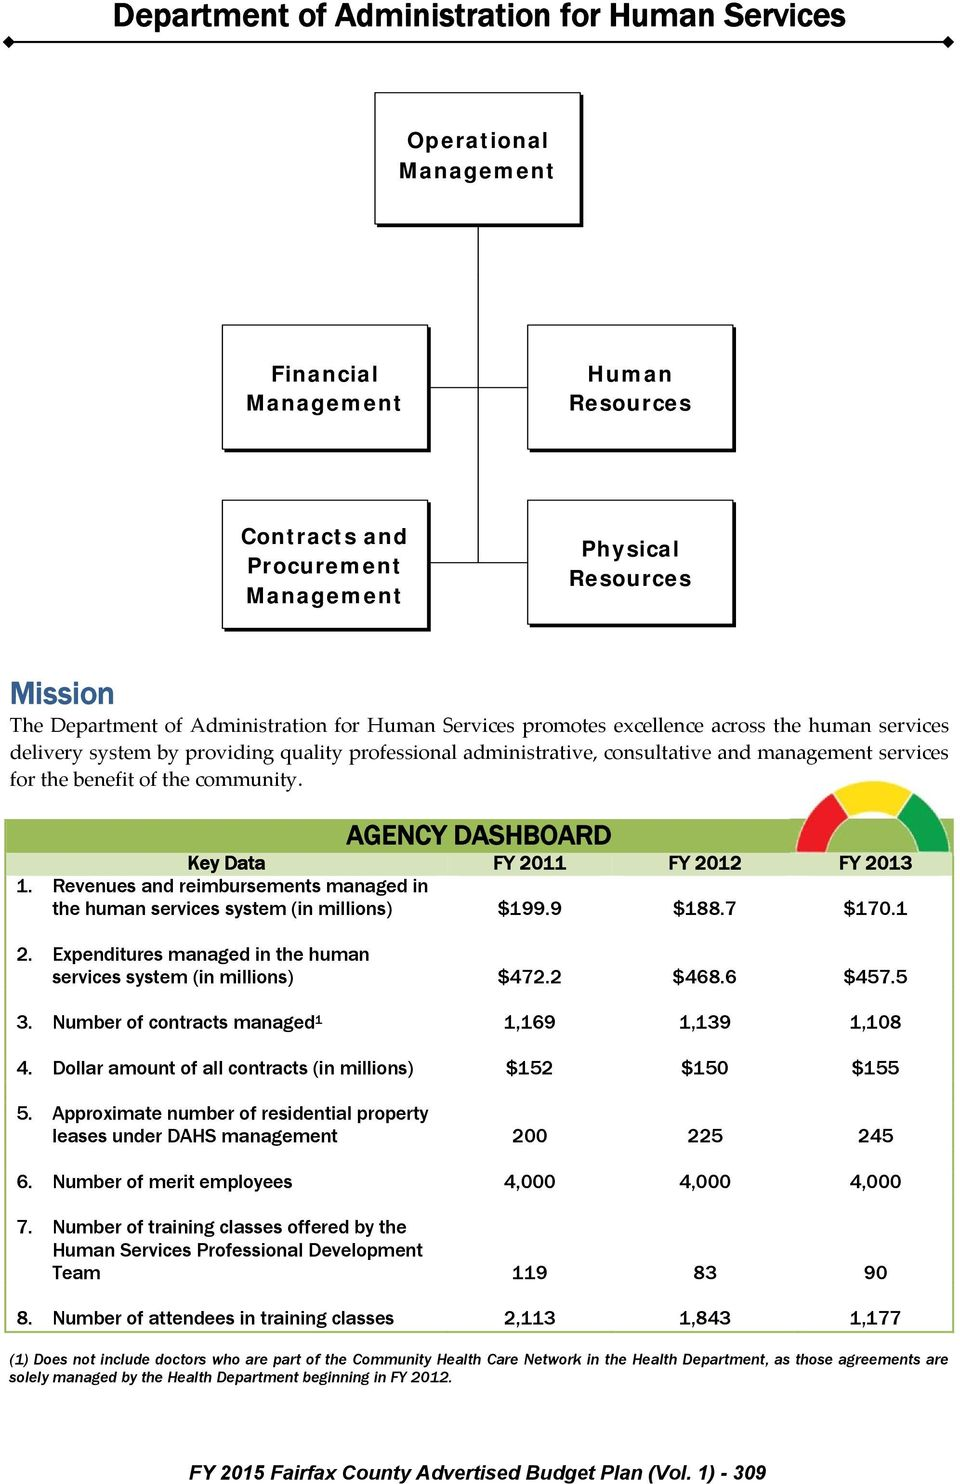 AGENCY DASHBOARD Key Data FY 2011 FY 2012 FY 2013 1. Revenues and reimbursements managed in the human services system (in millions) $199.9 $188.7 $170.1 2.